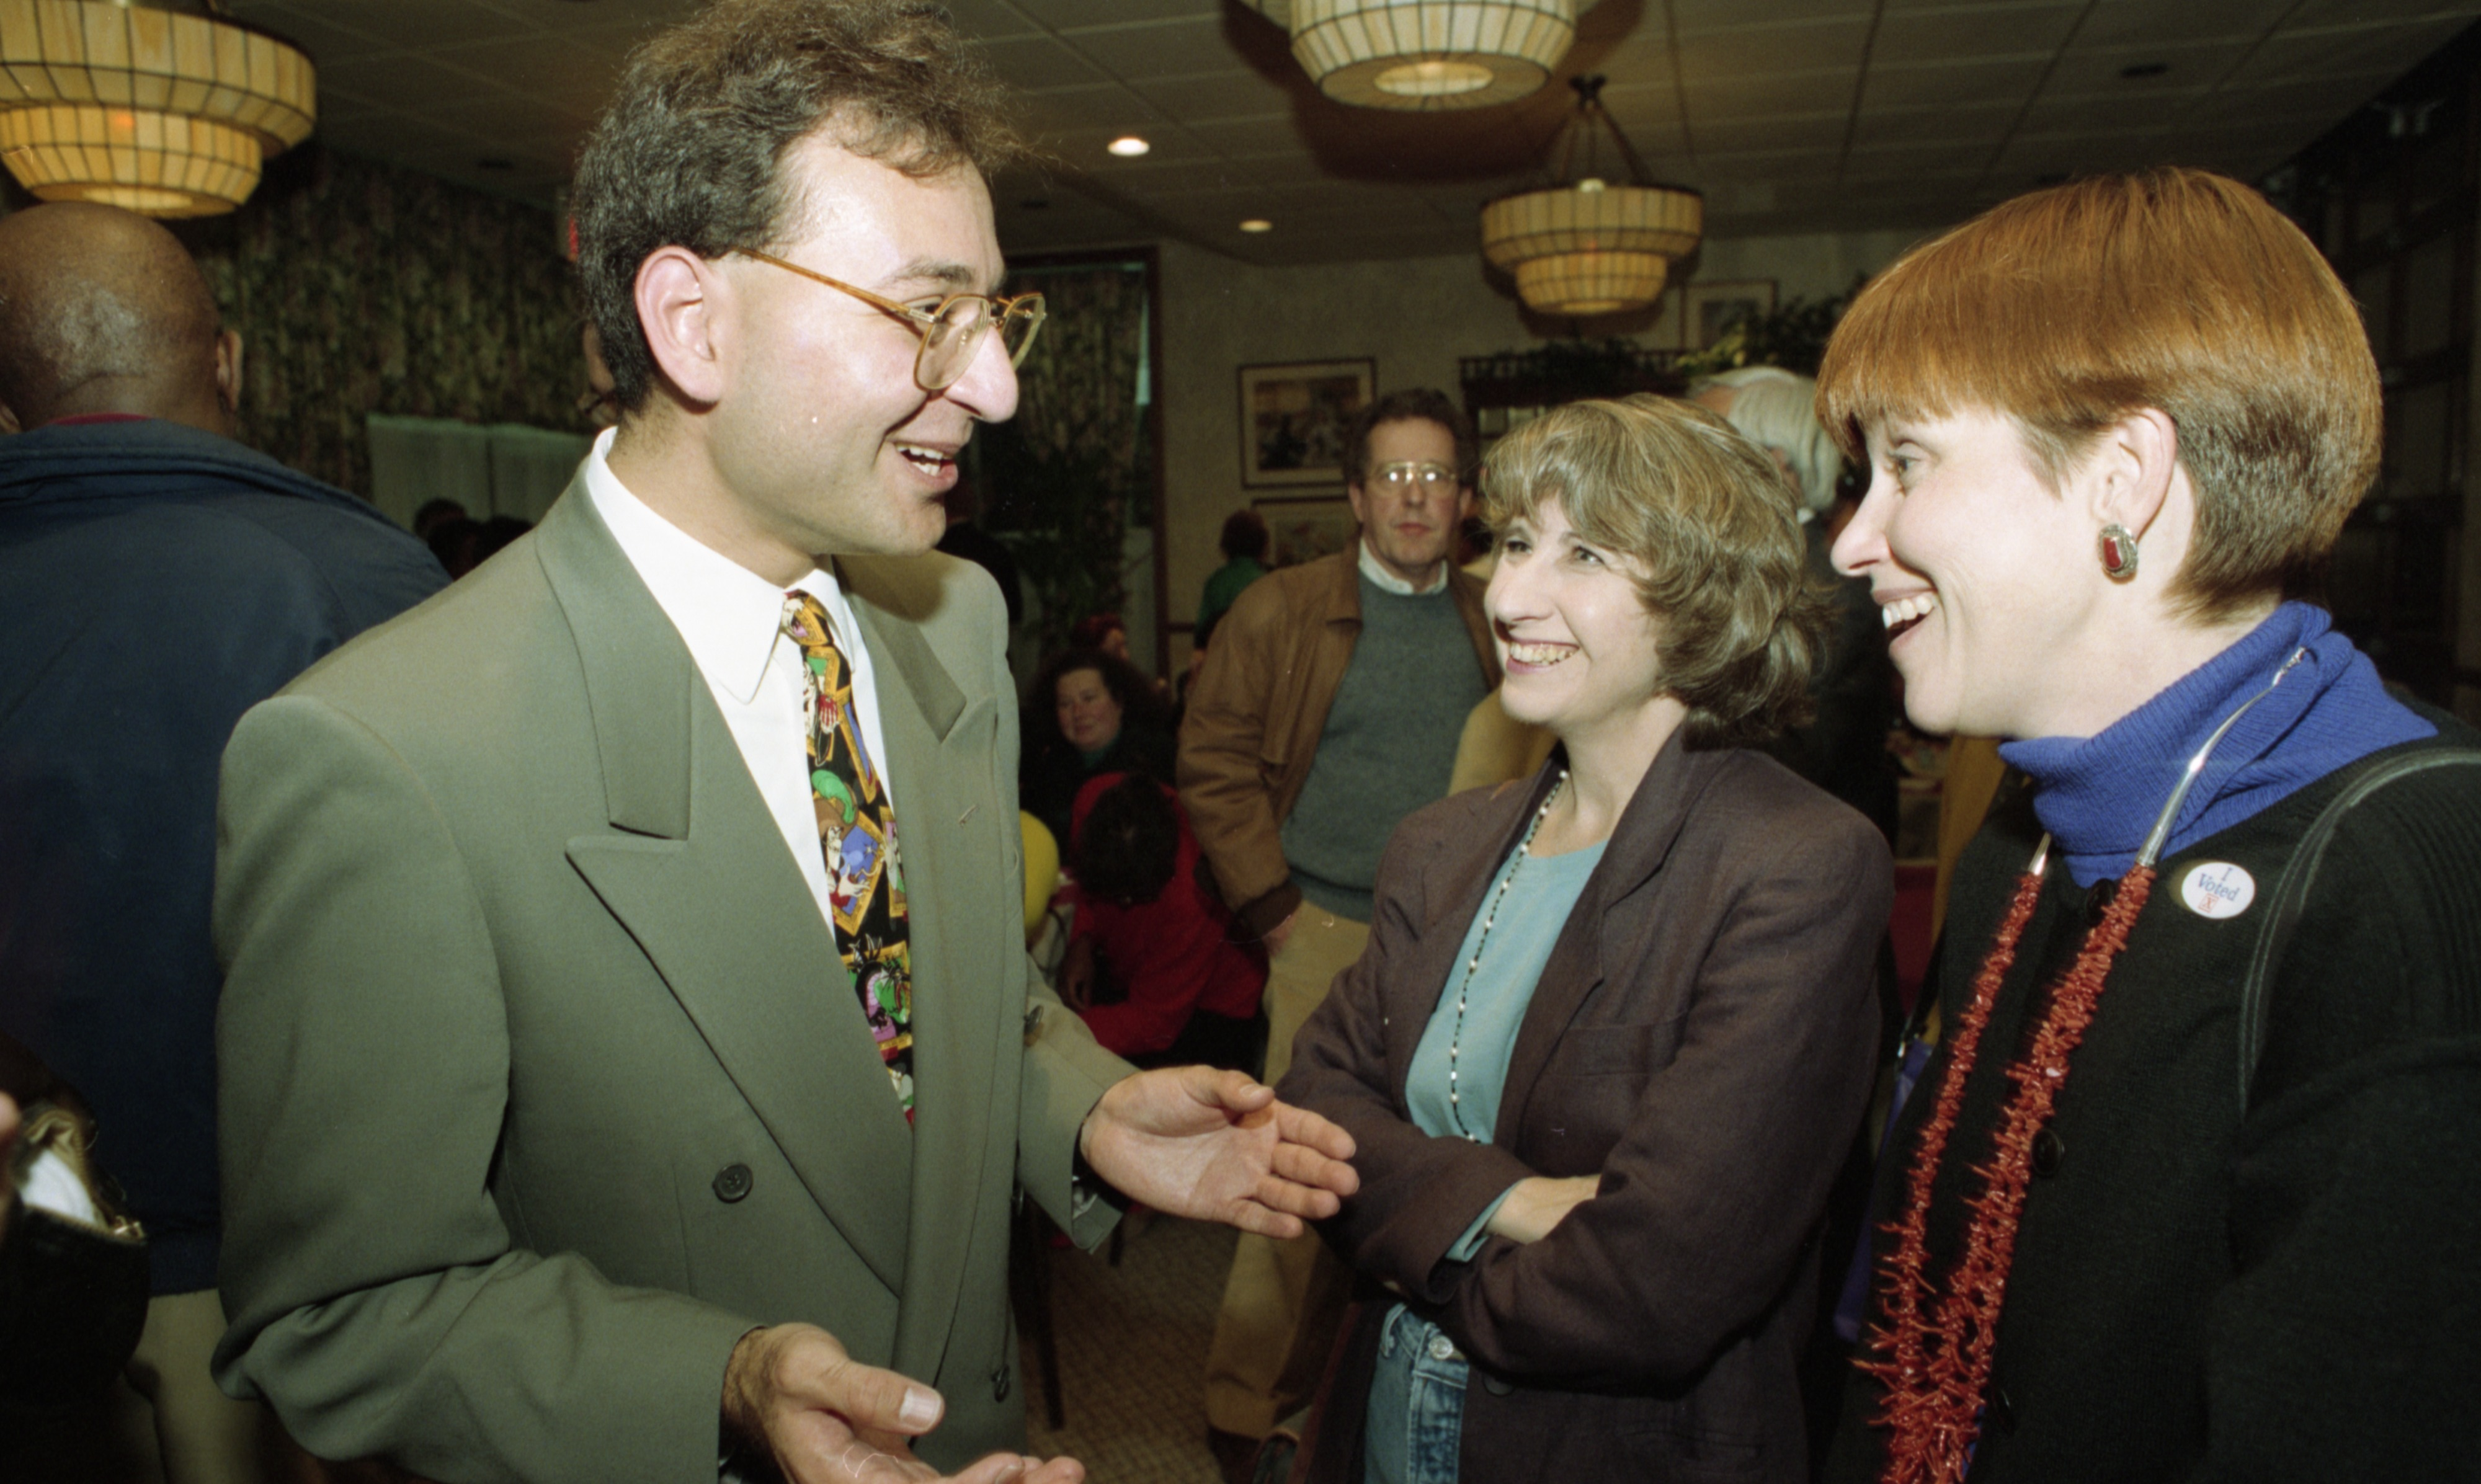 Peter Nicolas, Grace Shackman, & Rebecca Head During Ann Arbor City Council Elections, November 1993 image